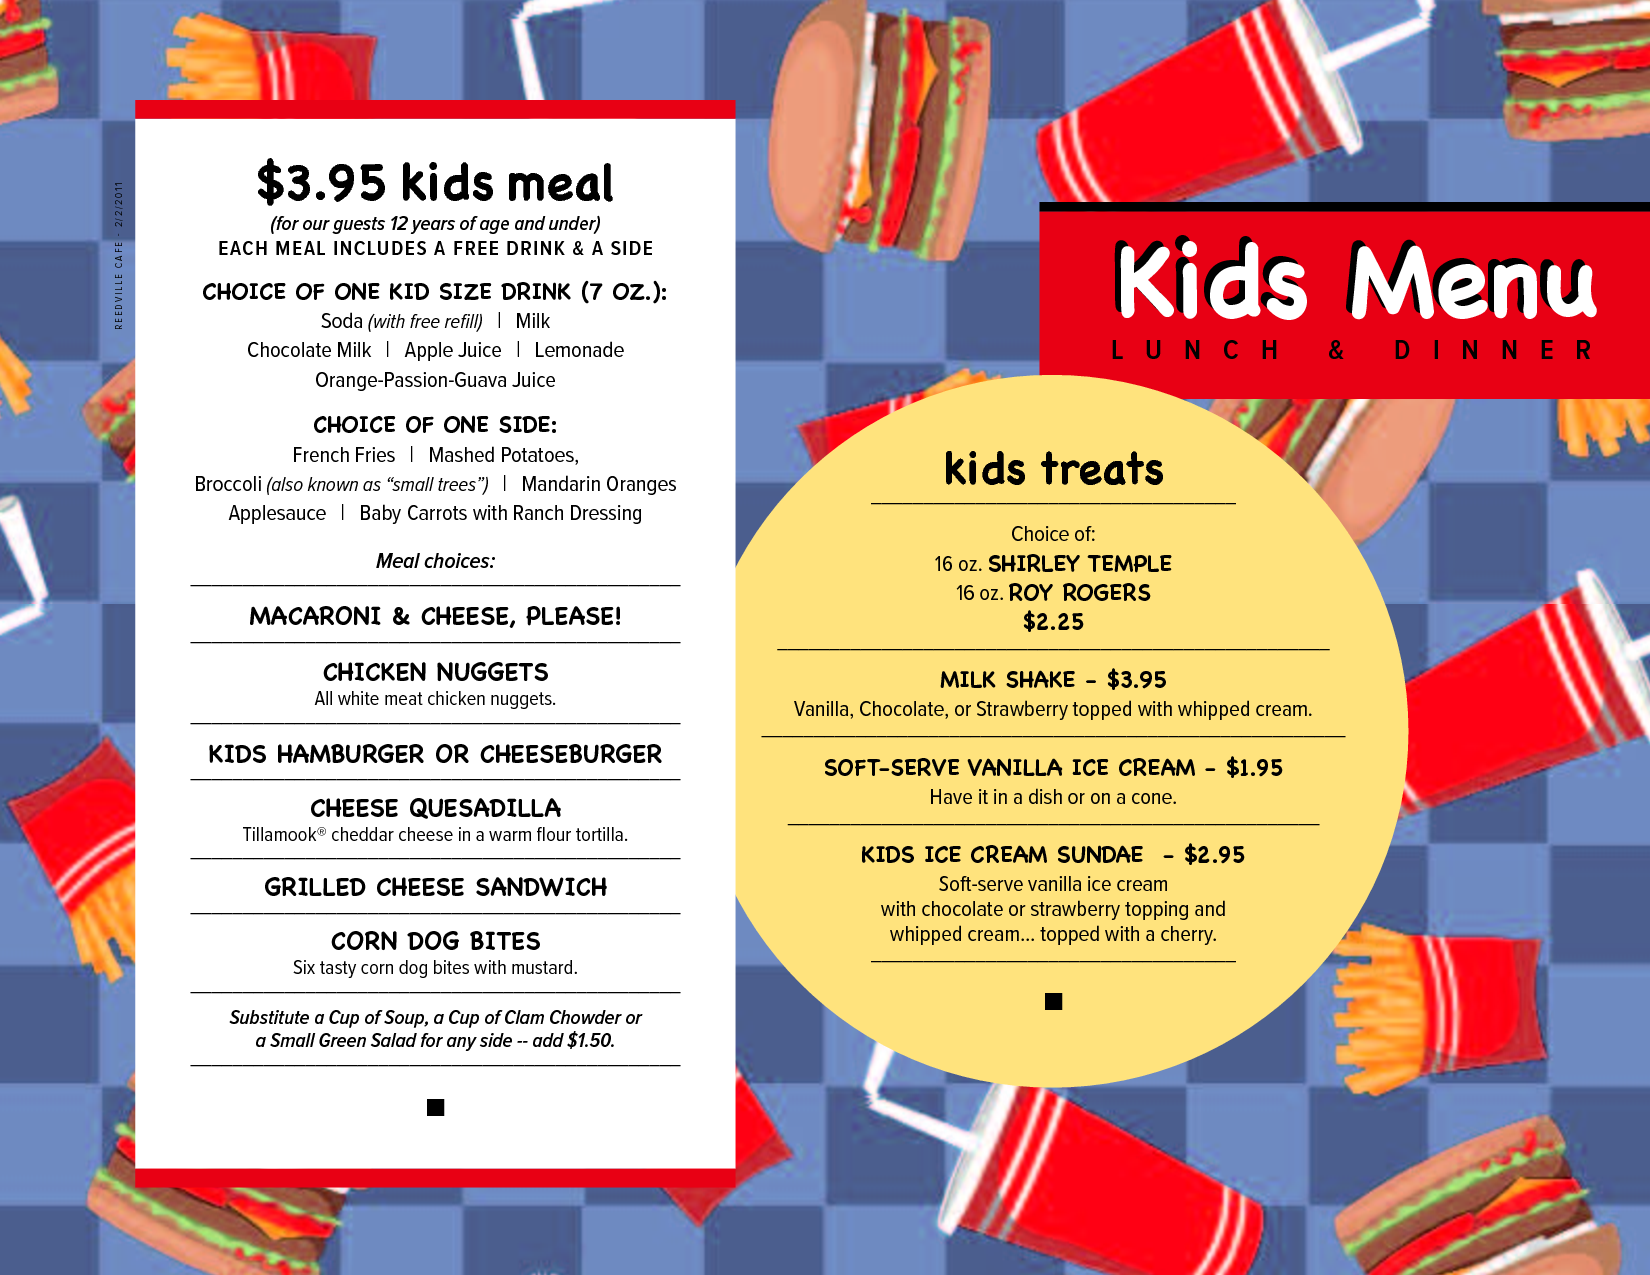 free menu templates kids Menu kids Menu menu ideas – Menu Templates for Kids